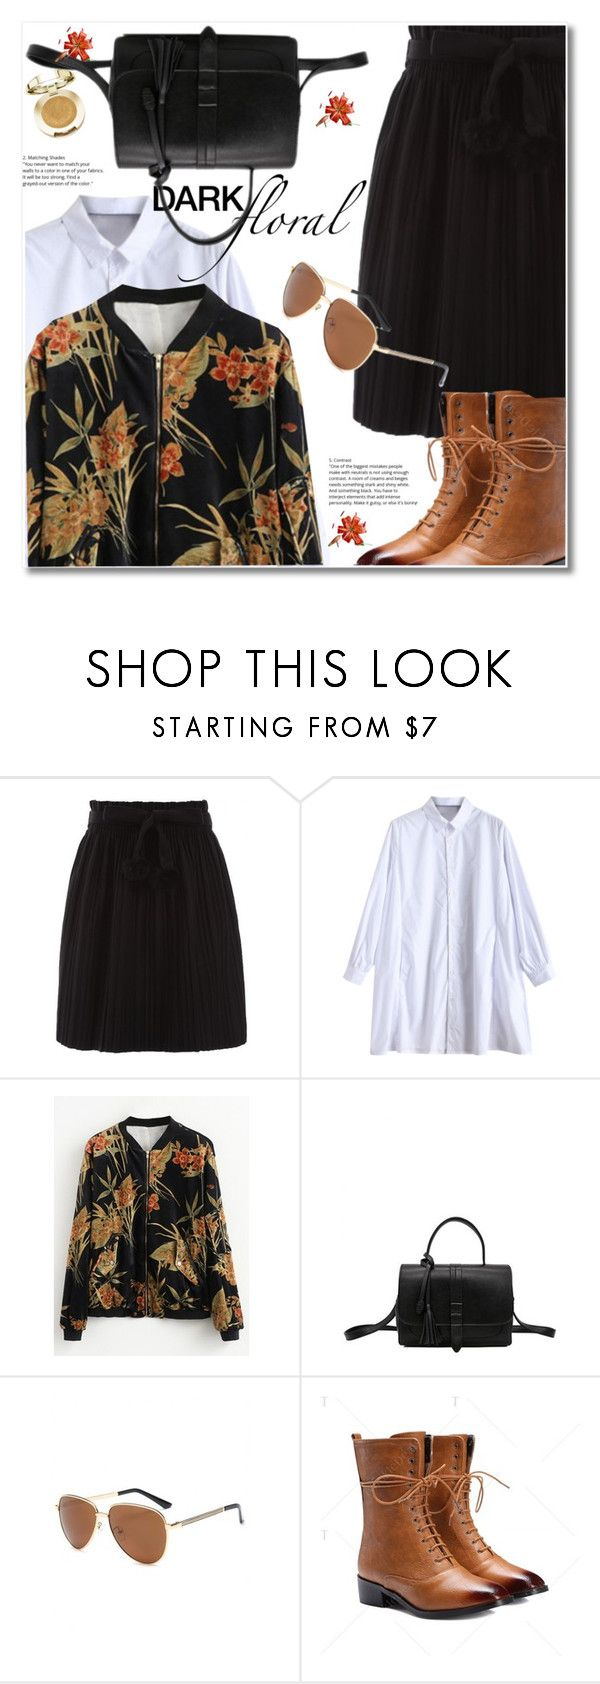 """""""Dark floral"""" by svijetlana ❤ liked on Polyvore featuring Milani, darkfloral and twinkledeals"""